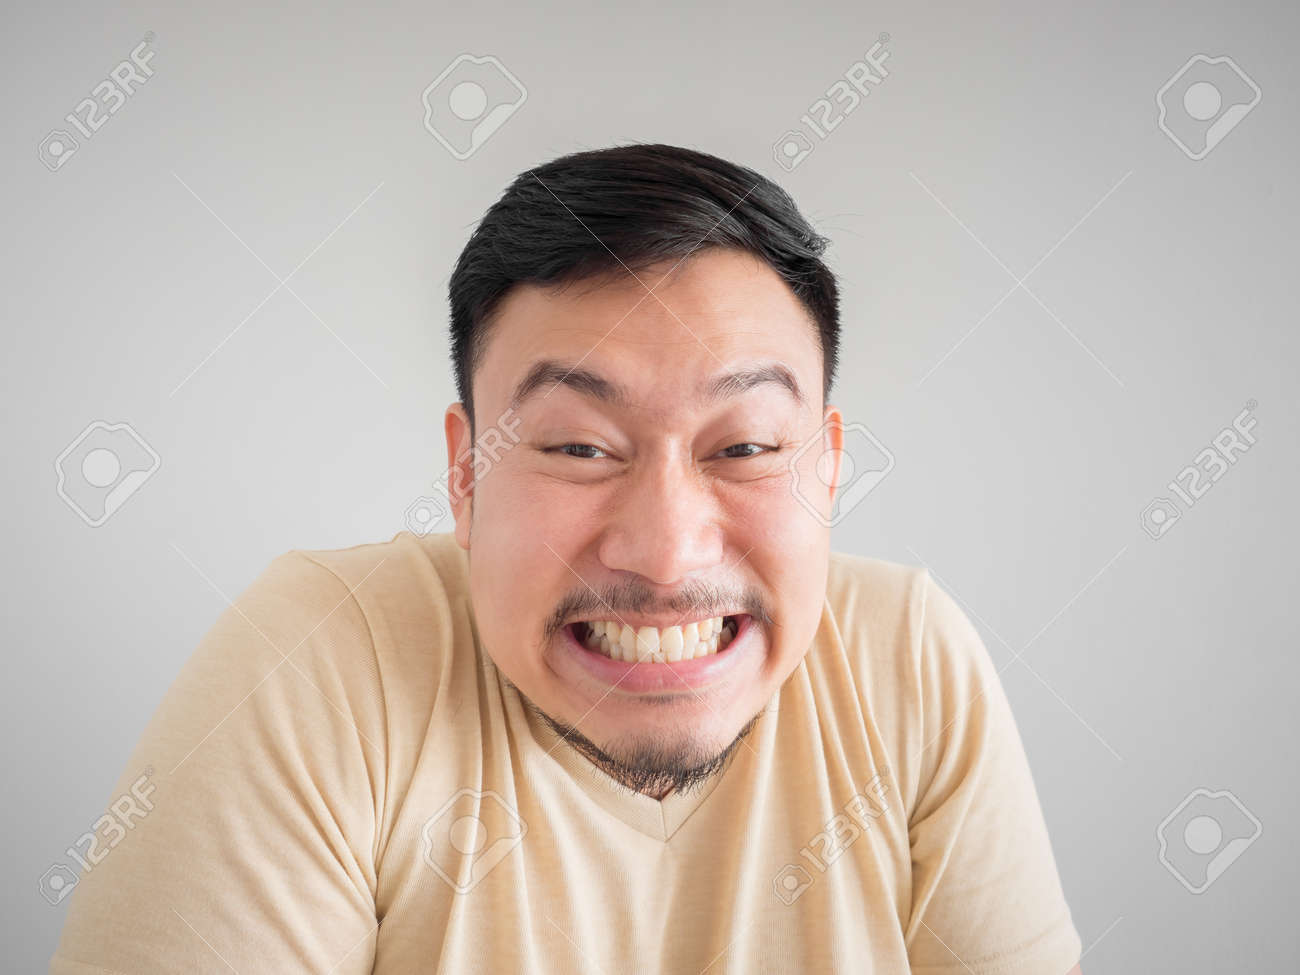 Man old clipart asian funny of